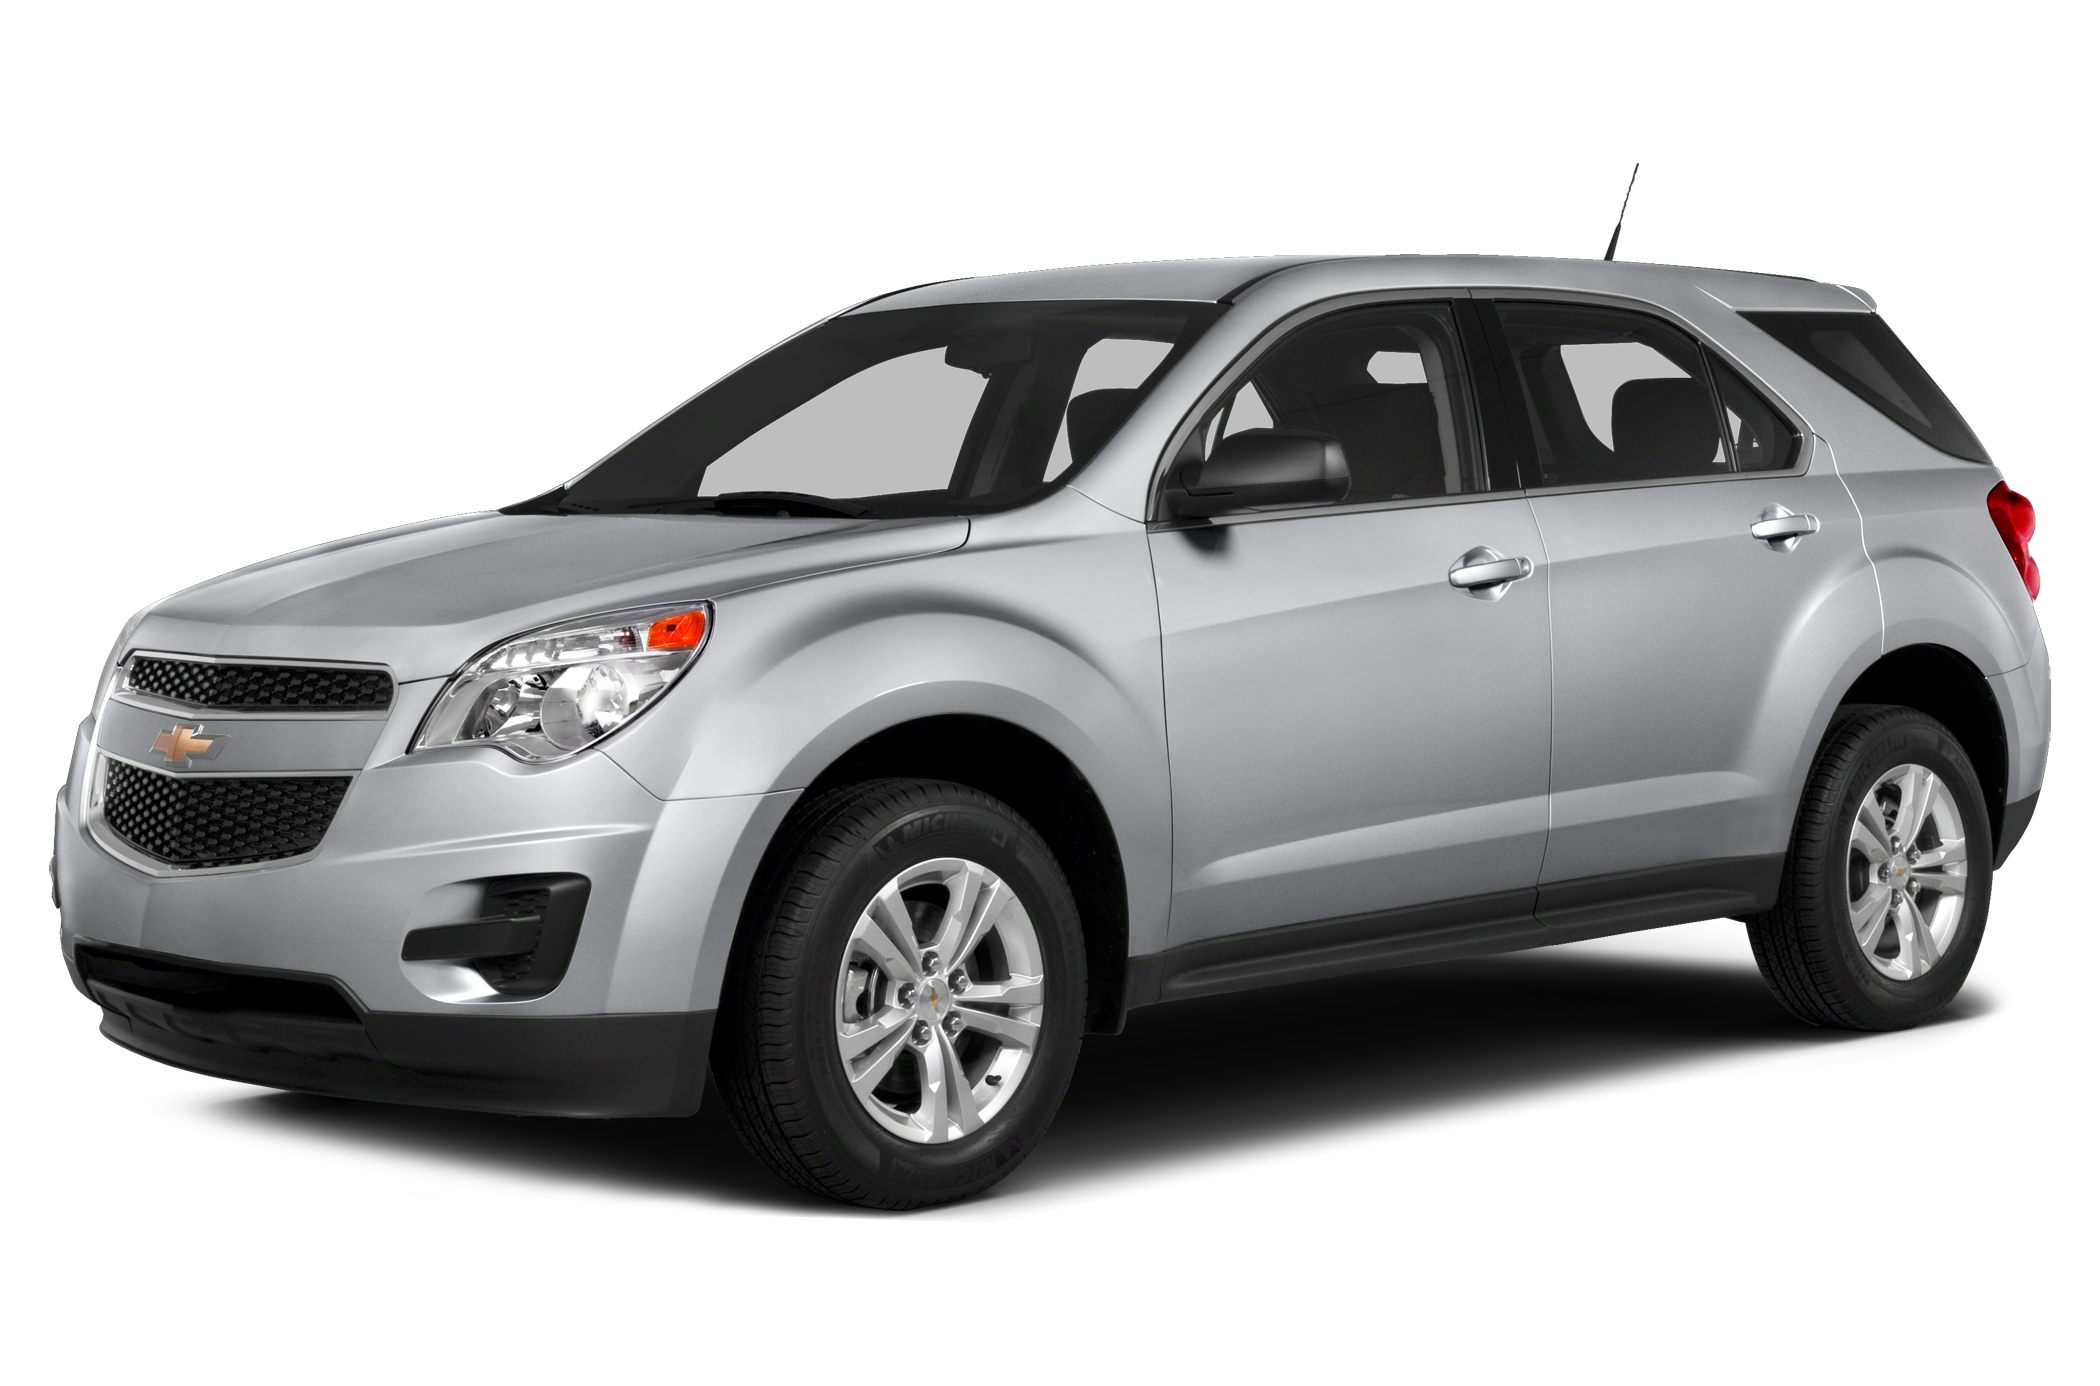 2015 Chevrolet Equinox LS SUV for sale in Twin Falls for $23,749 with 10 miles.